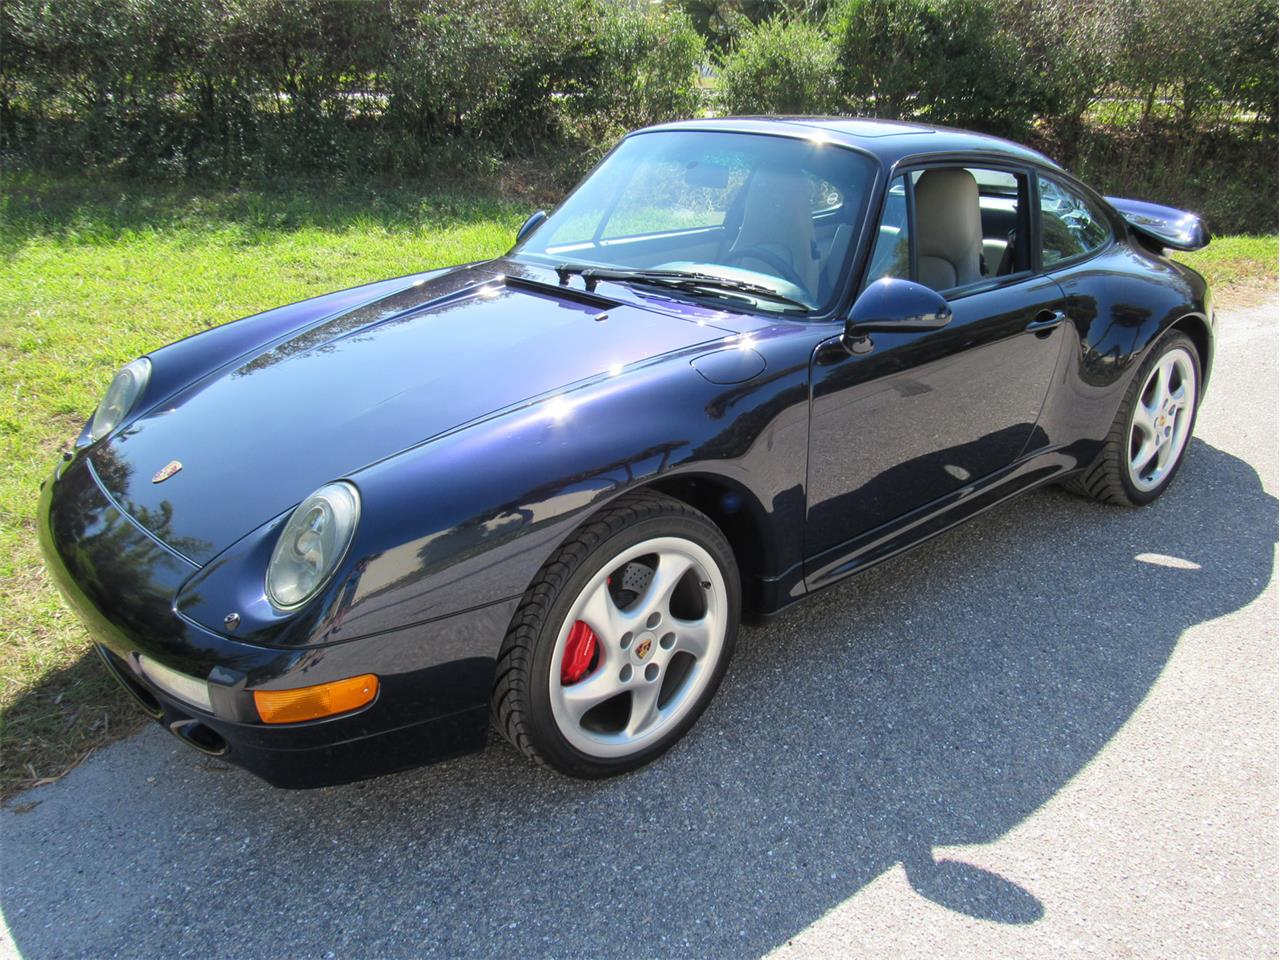 Large Picture of '96 Porsche 993/911 Carrera Turbo located in Sarasota Florida Offered by Vintage Motors Sarasota - MCL2